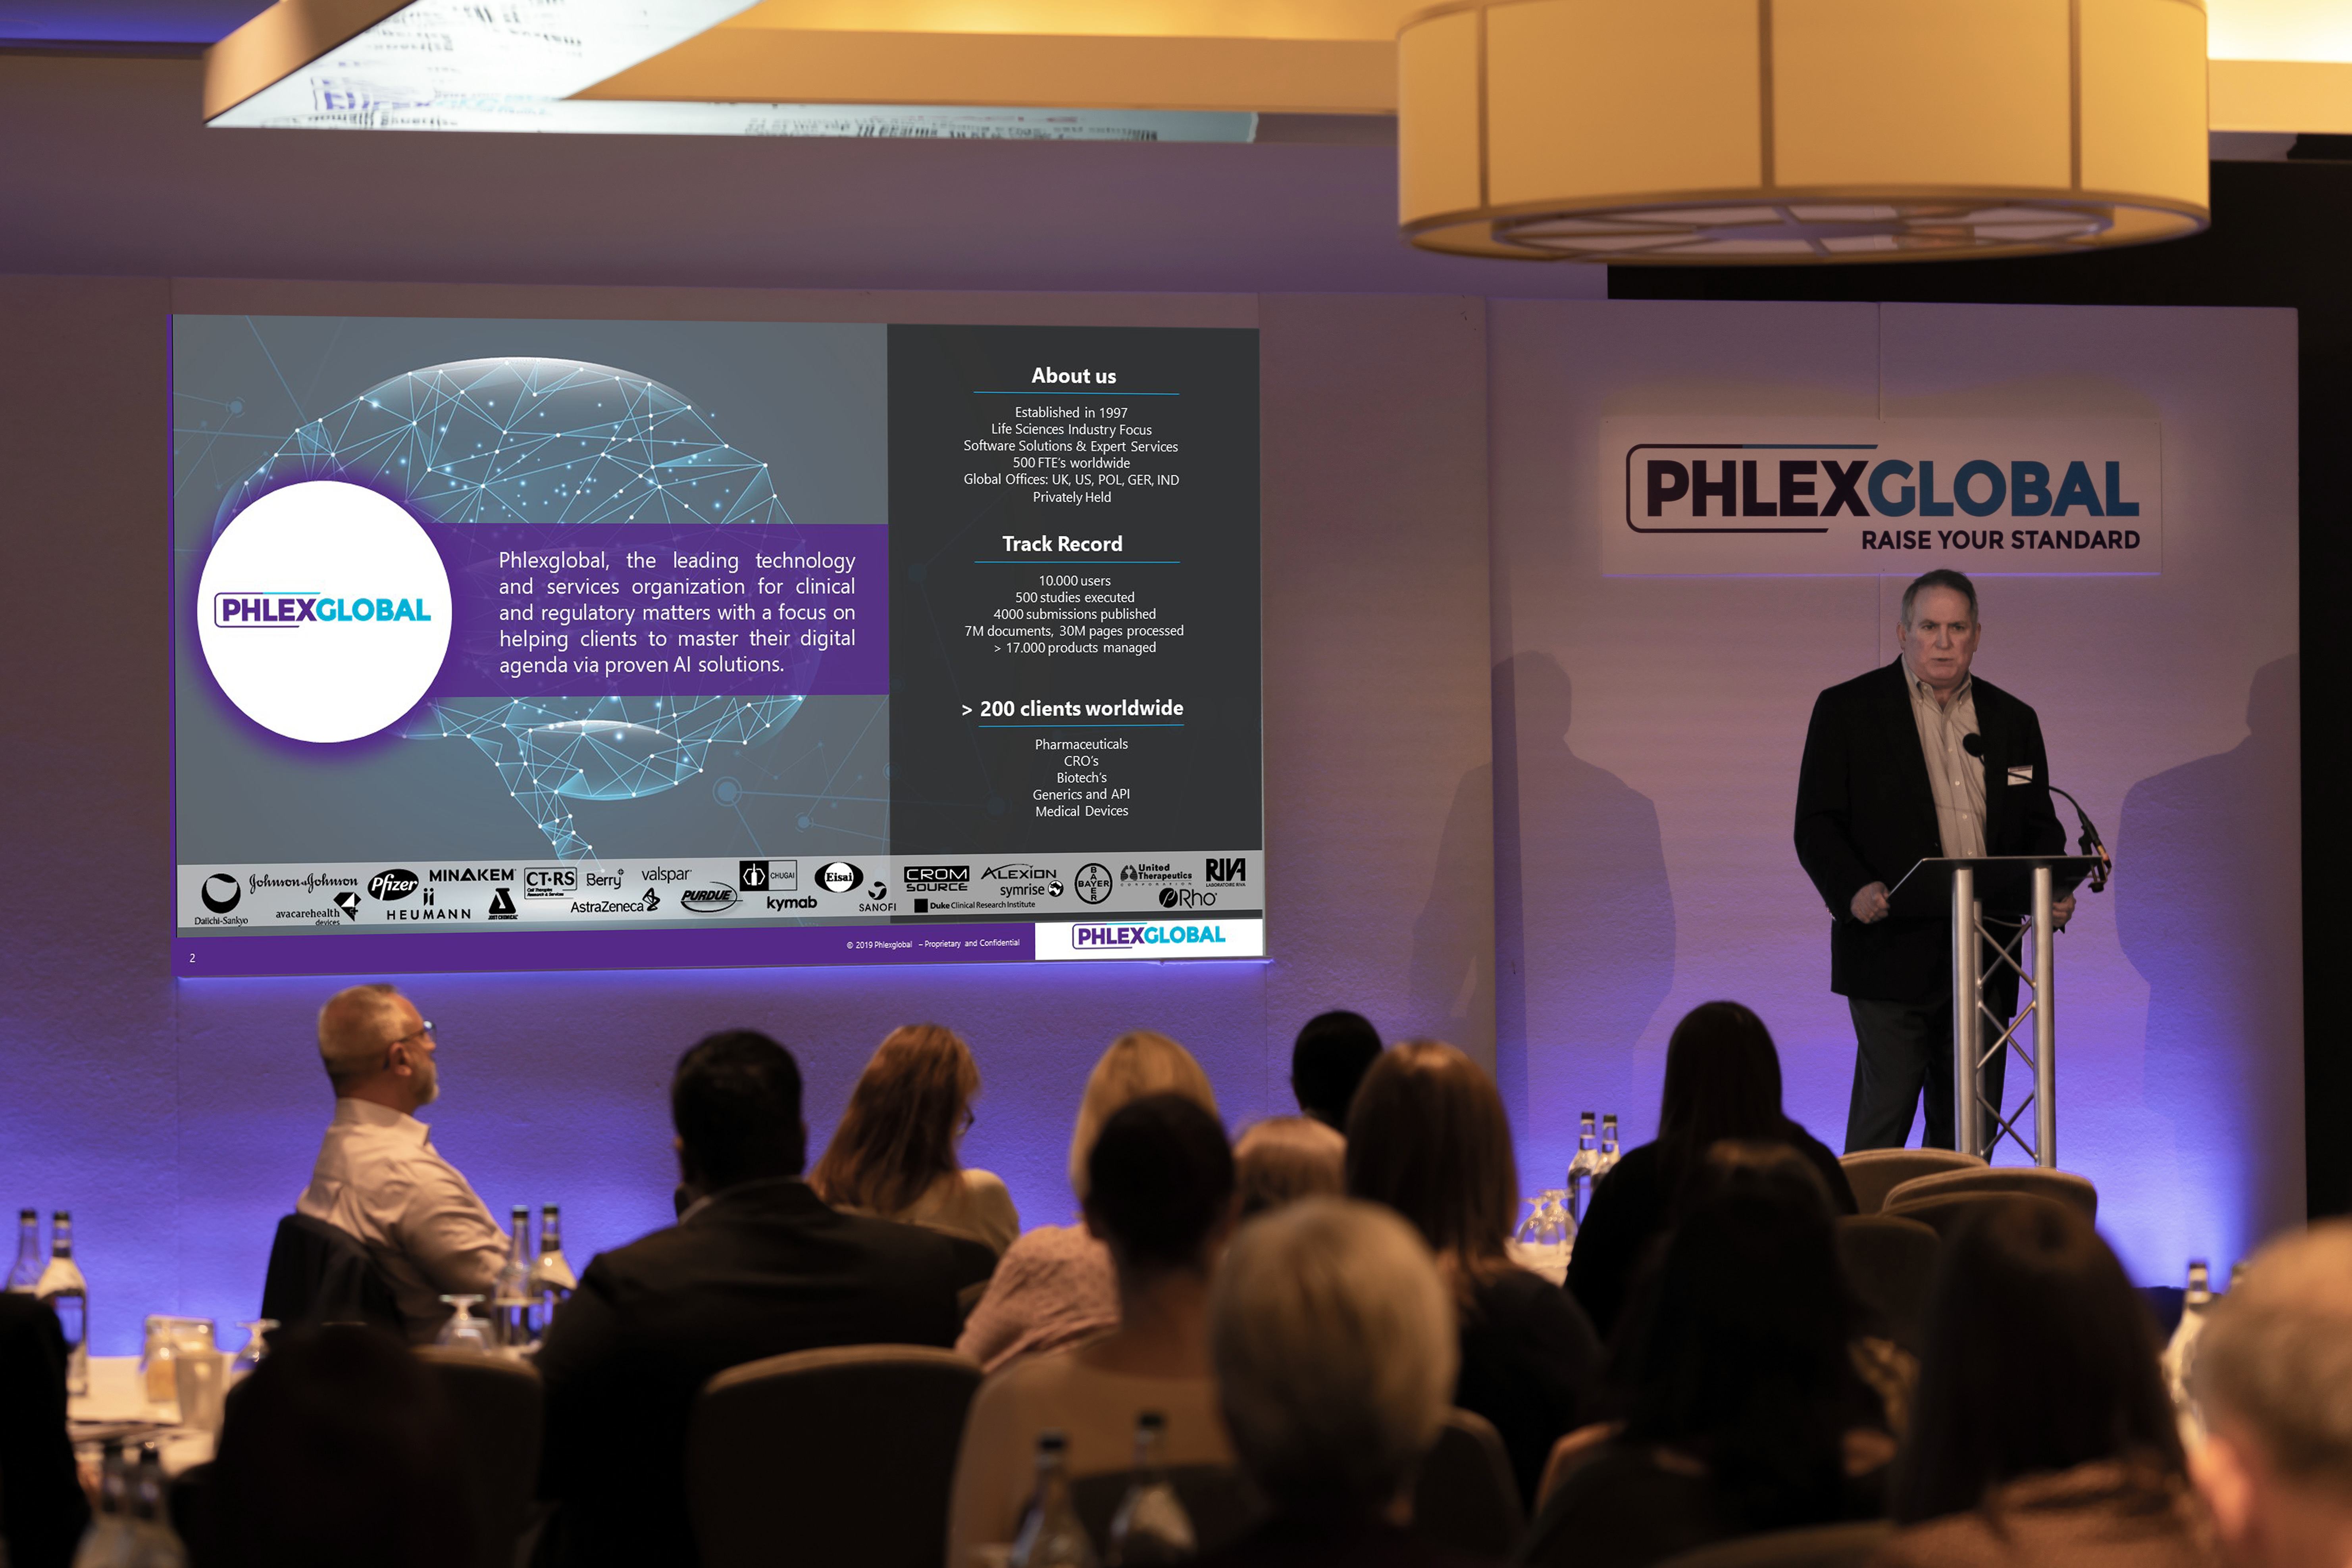 Phlexglobal background UK TMF World Forum